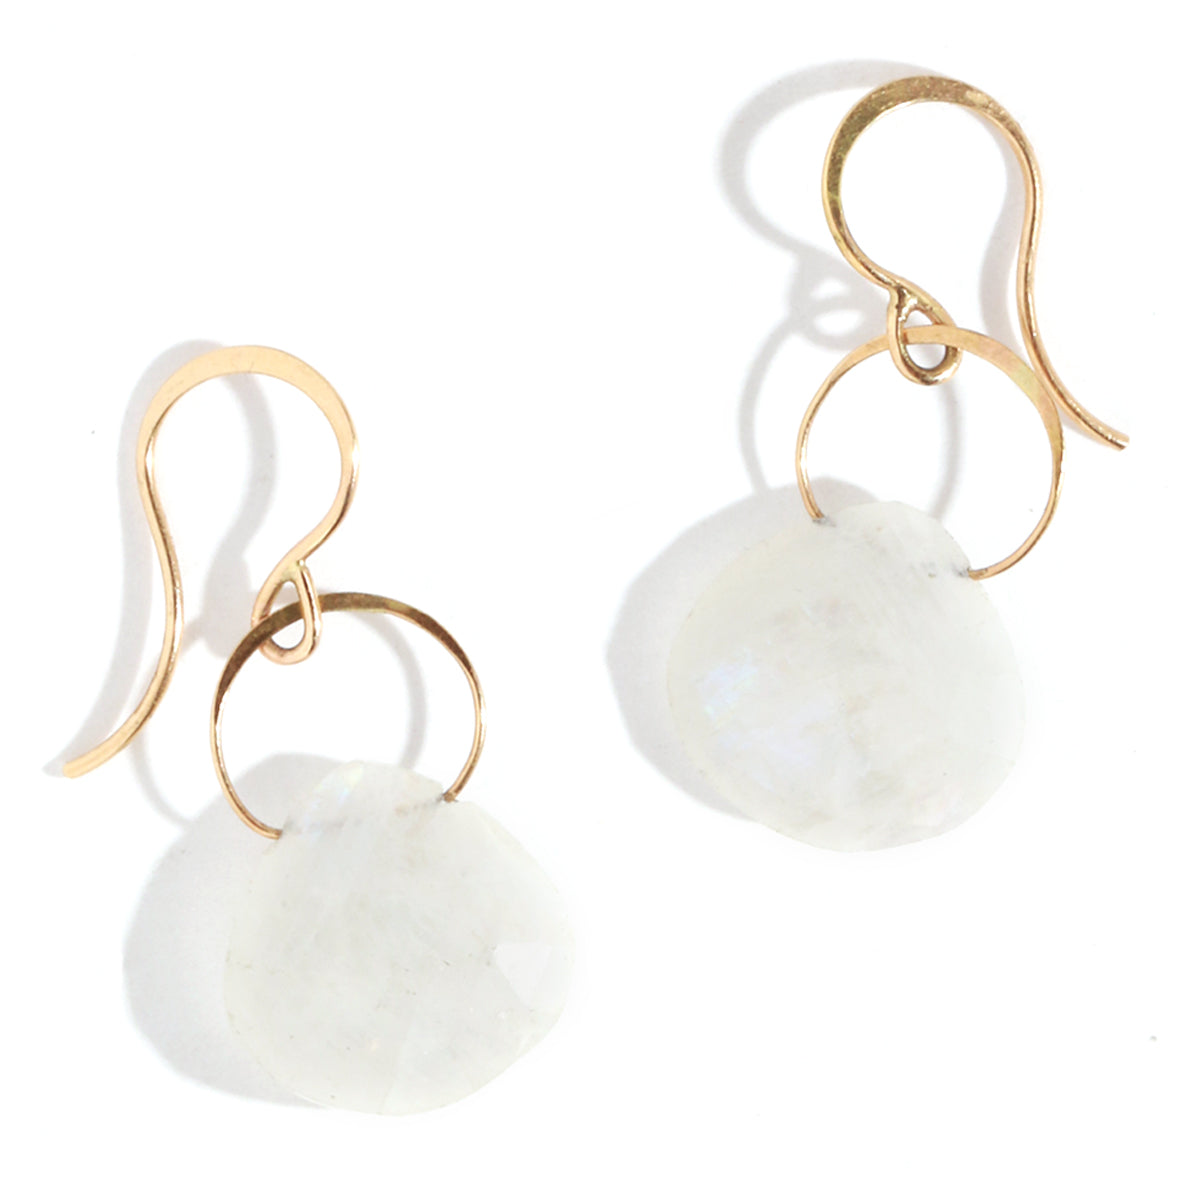 Moonstone single drop earrings - Melissa Joy Manning Jewelry